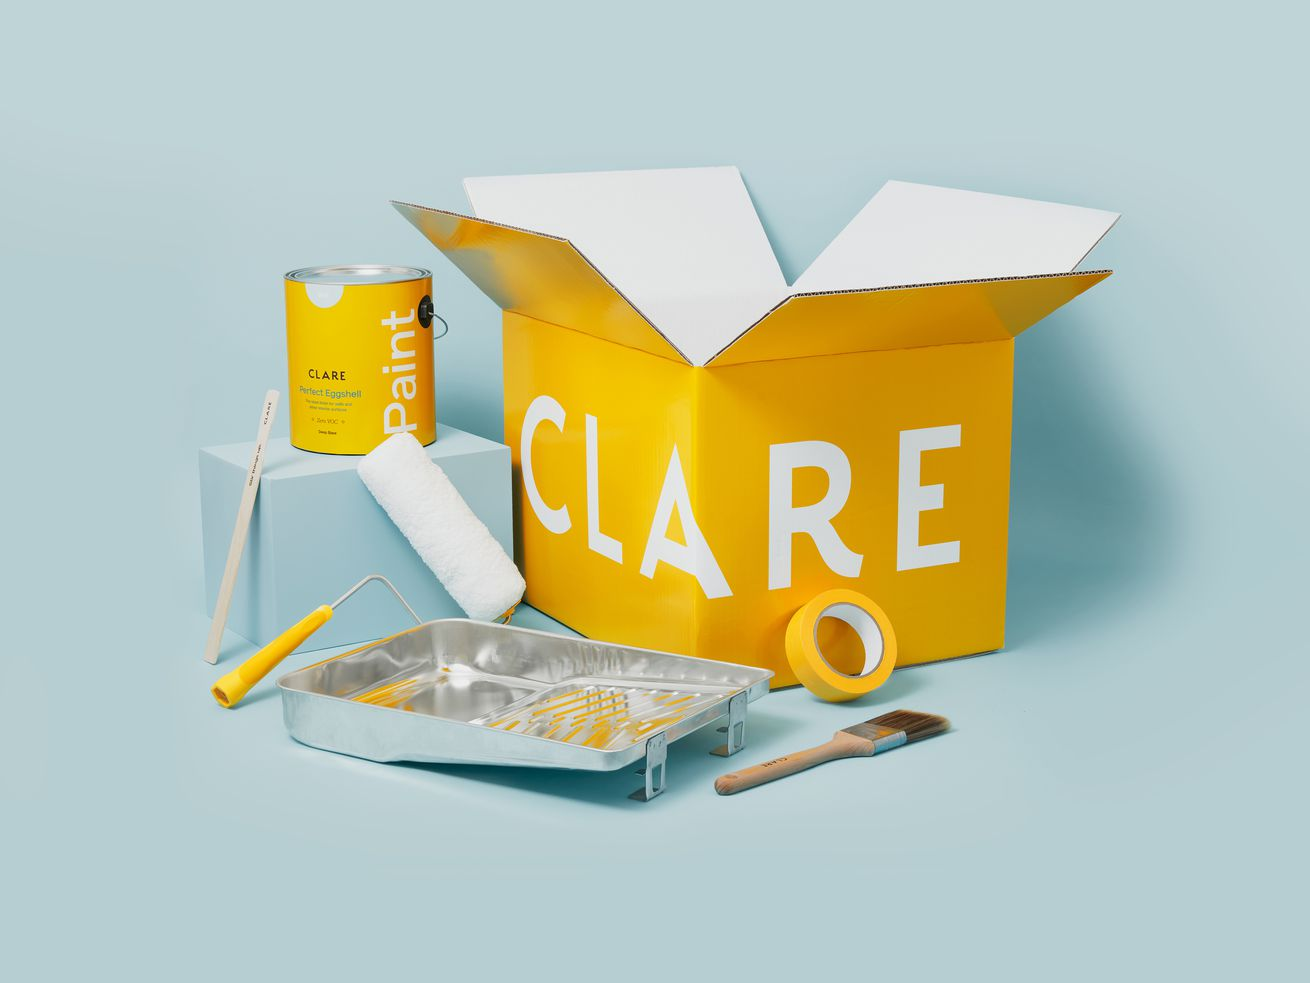 New startup Clare wants to make buying paint a breeze